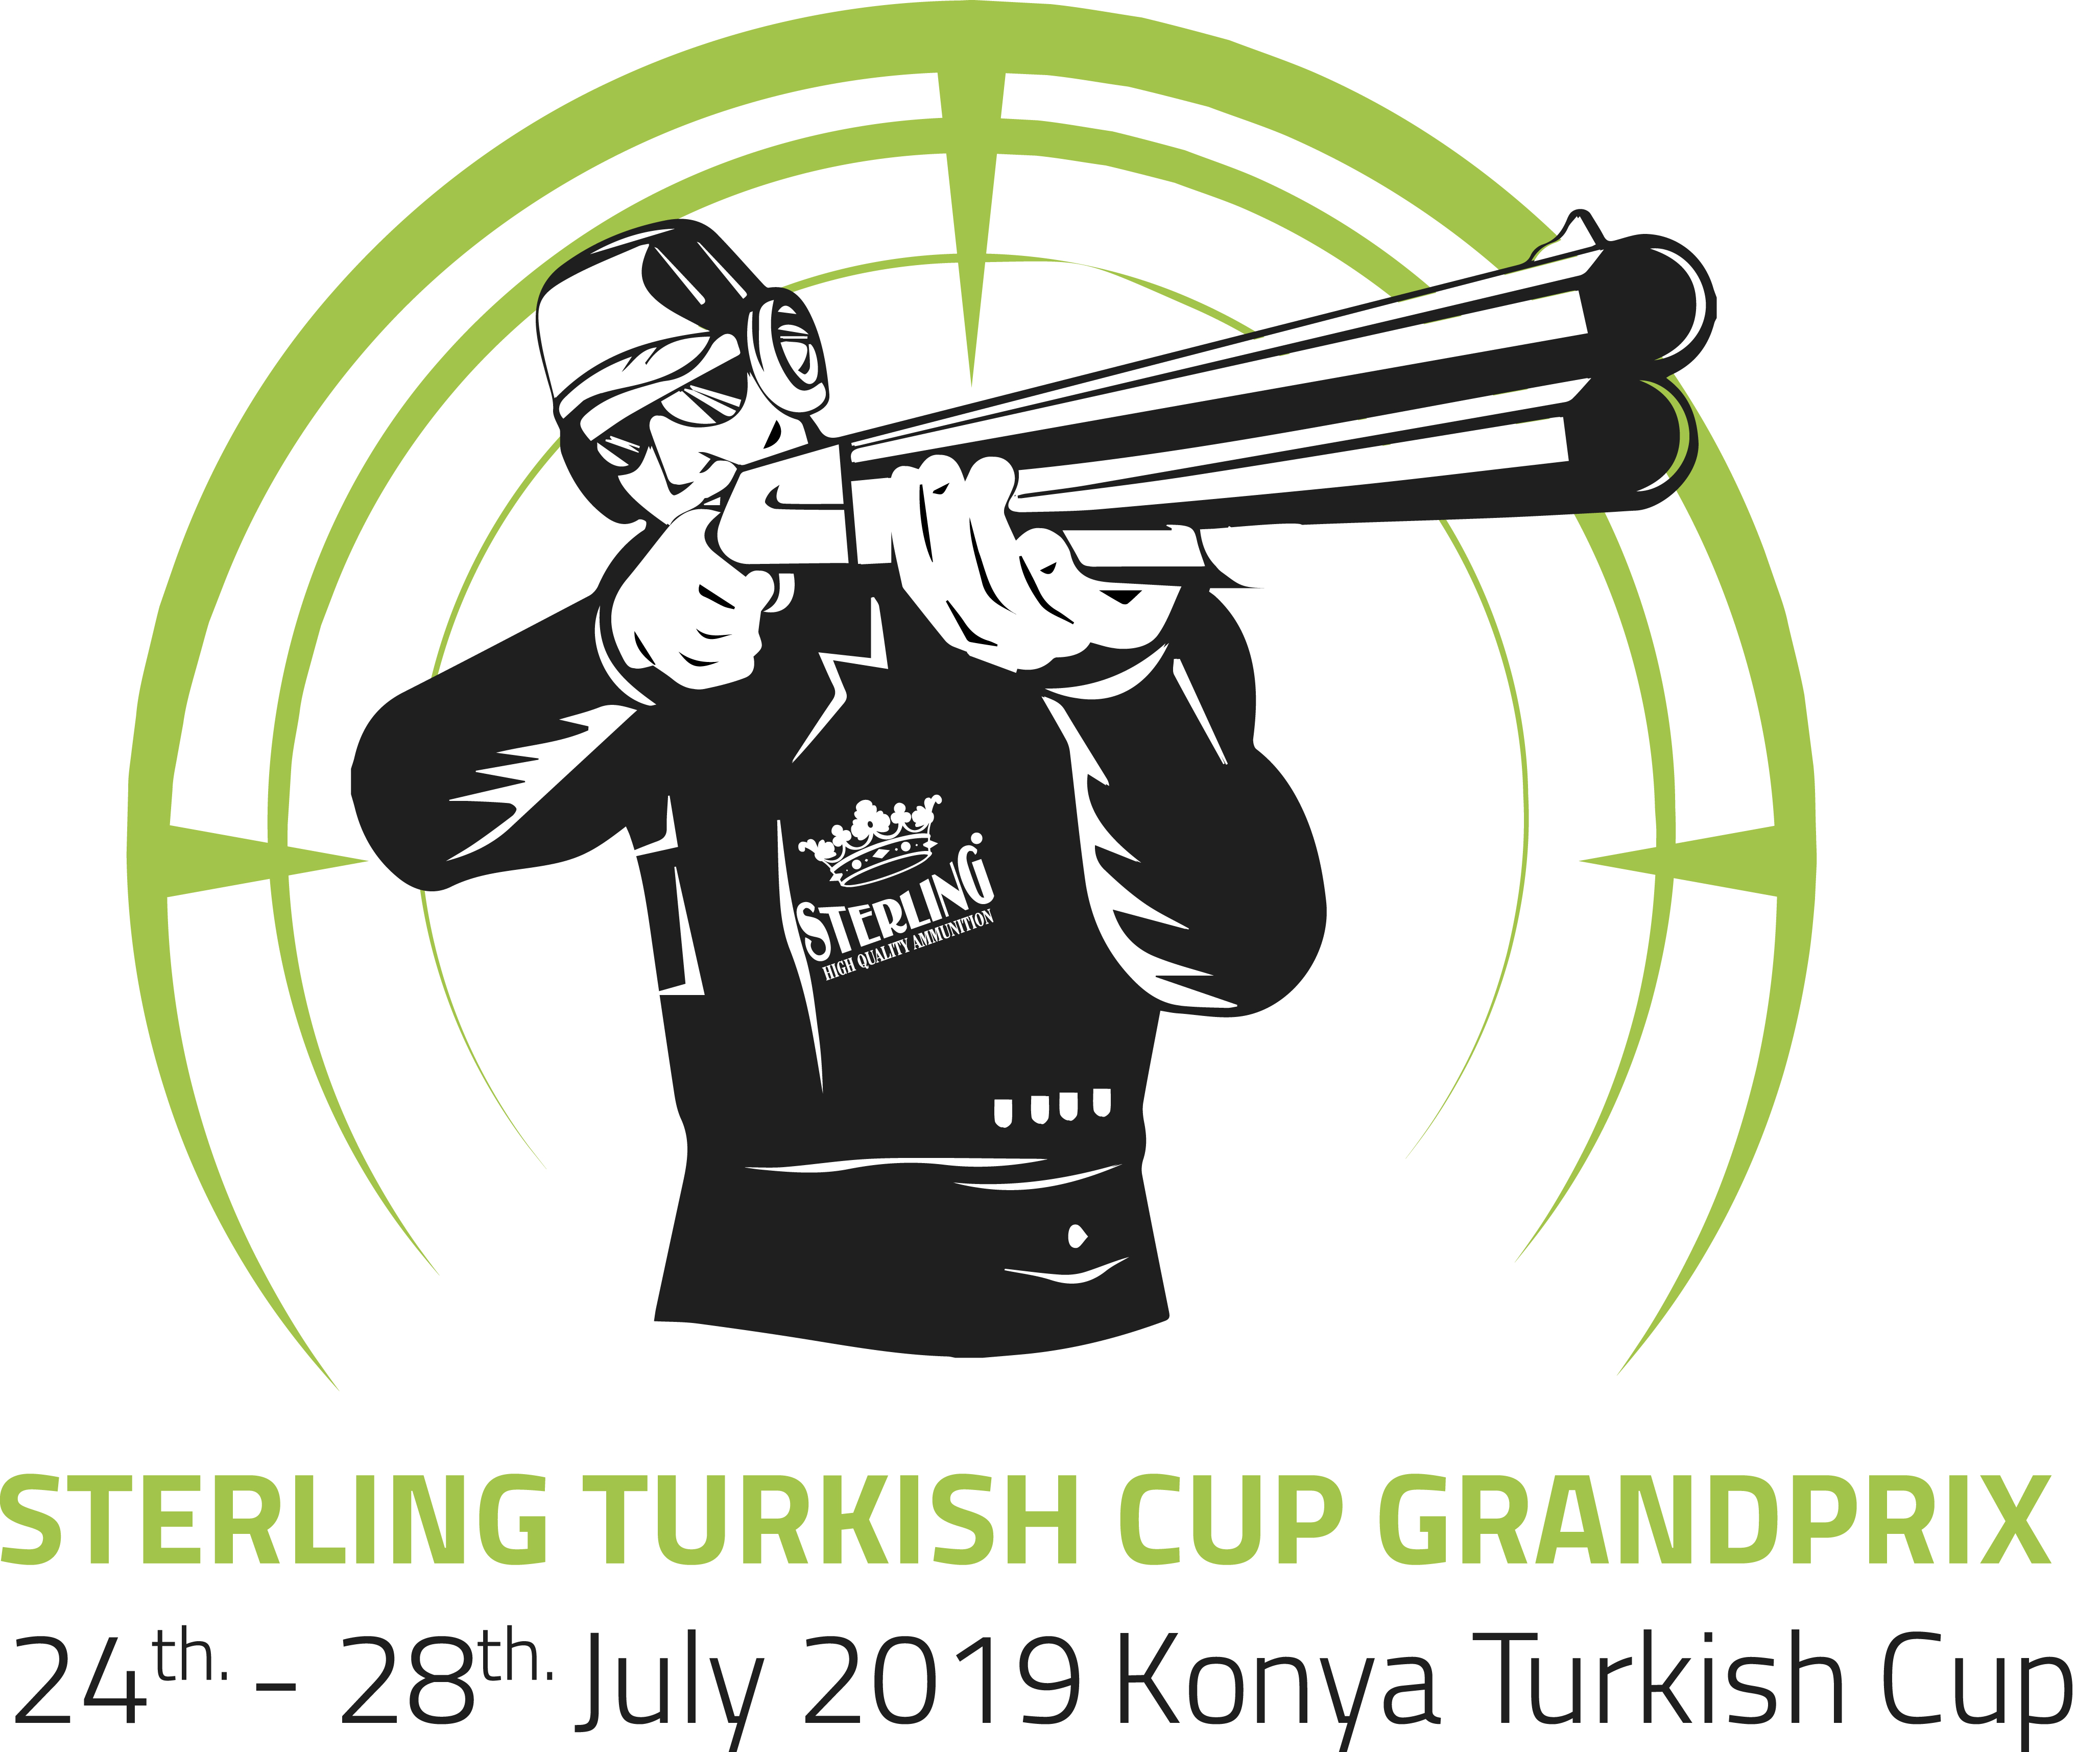 STERLING TURKISH CUP GRAND PRIX